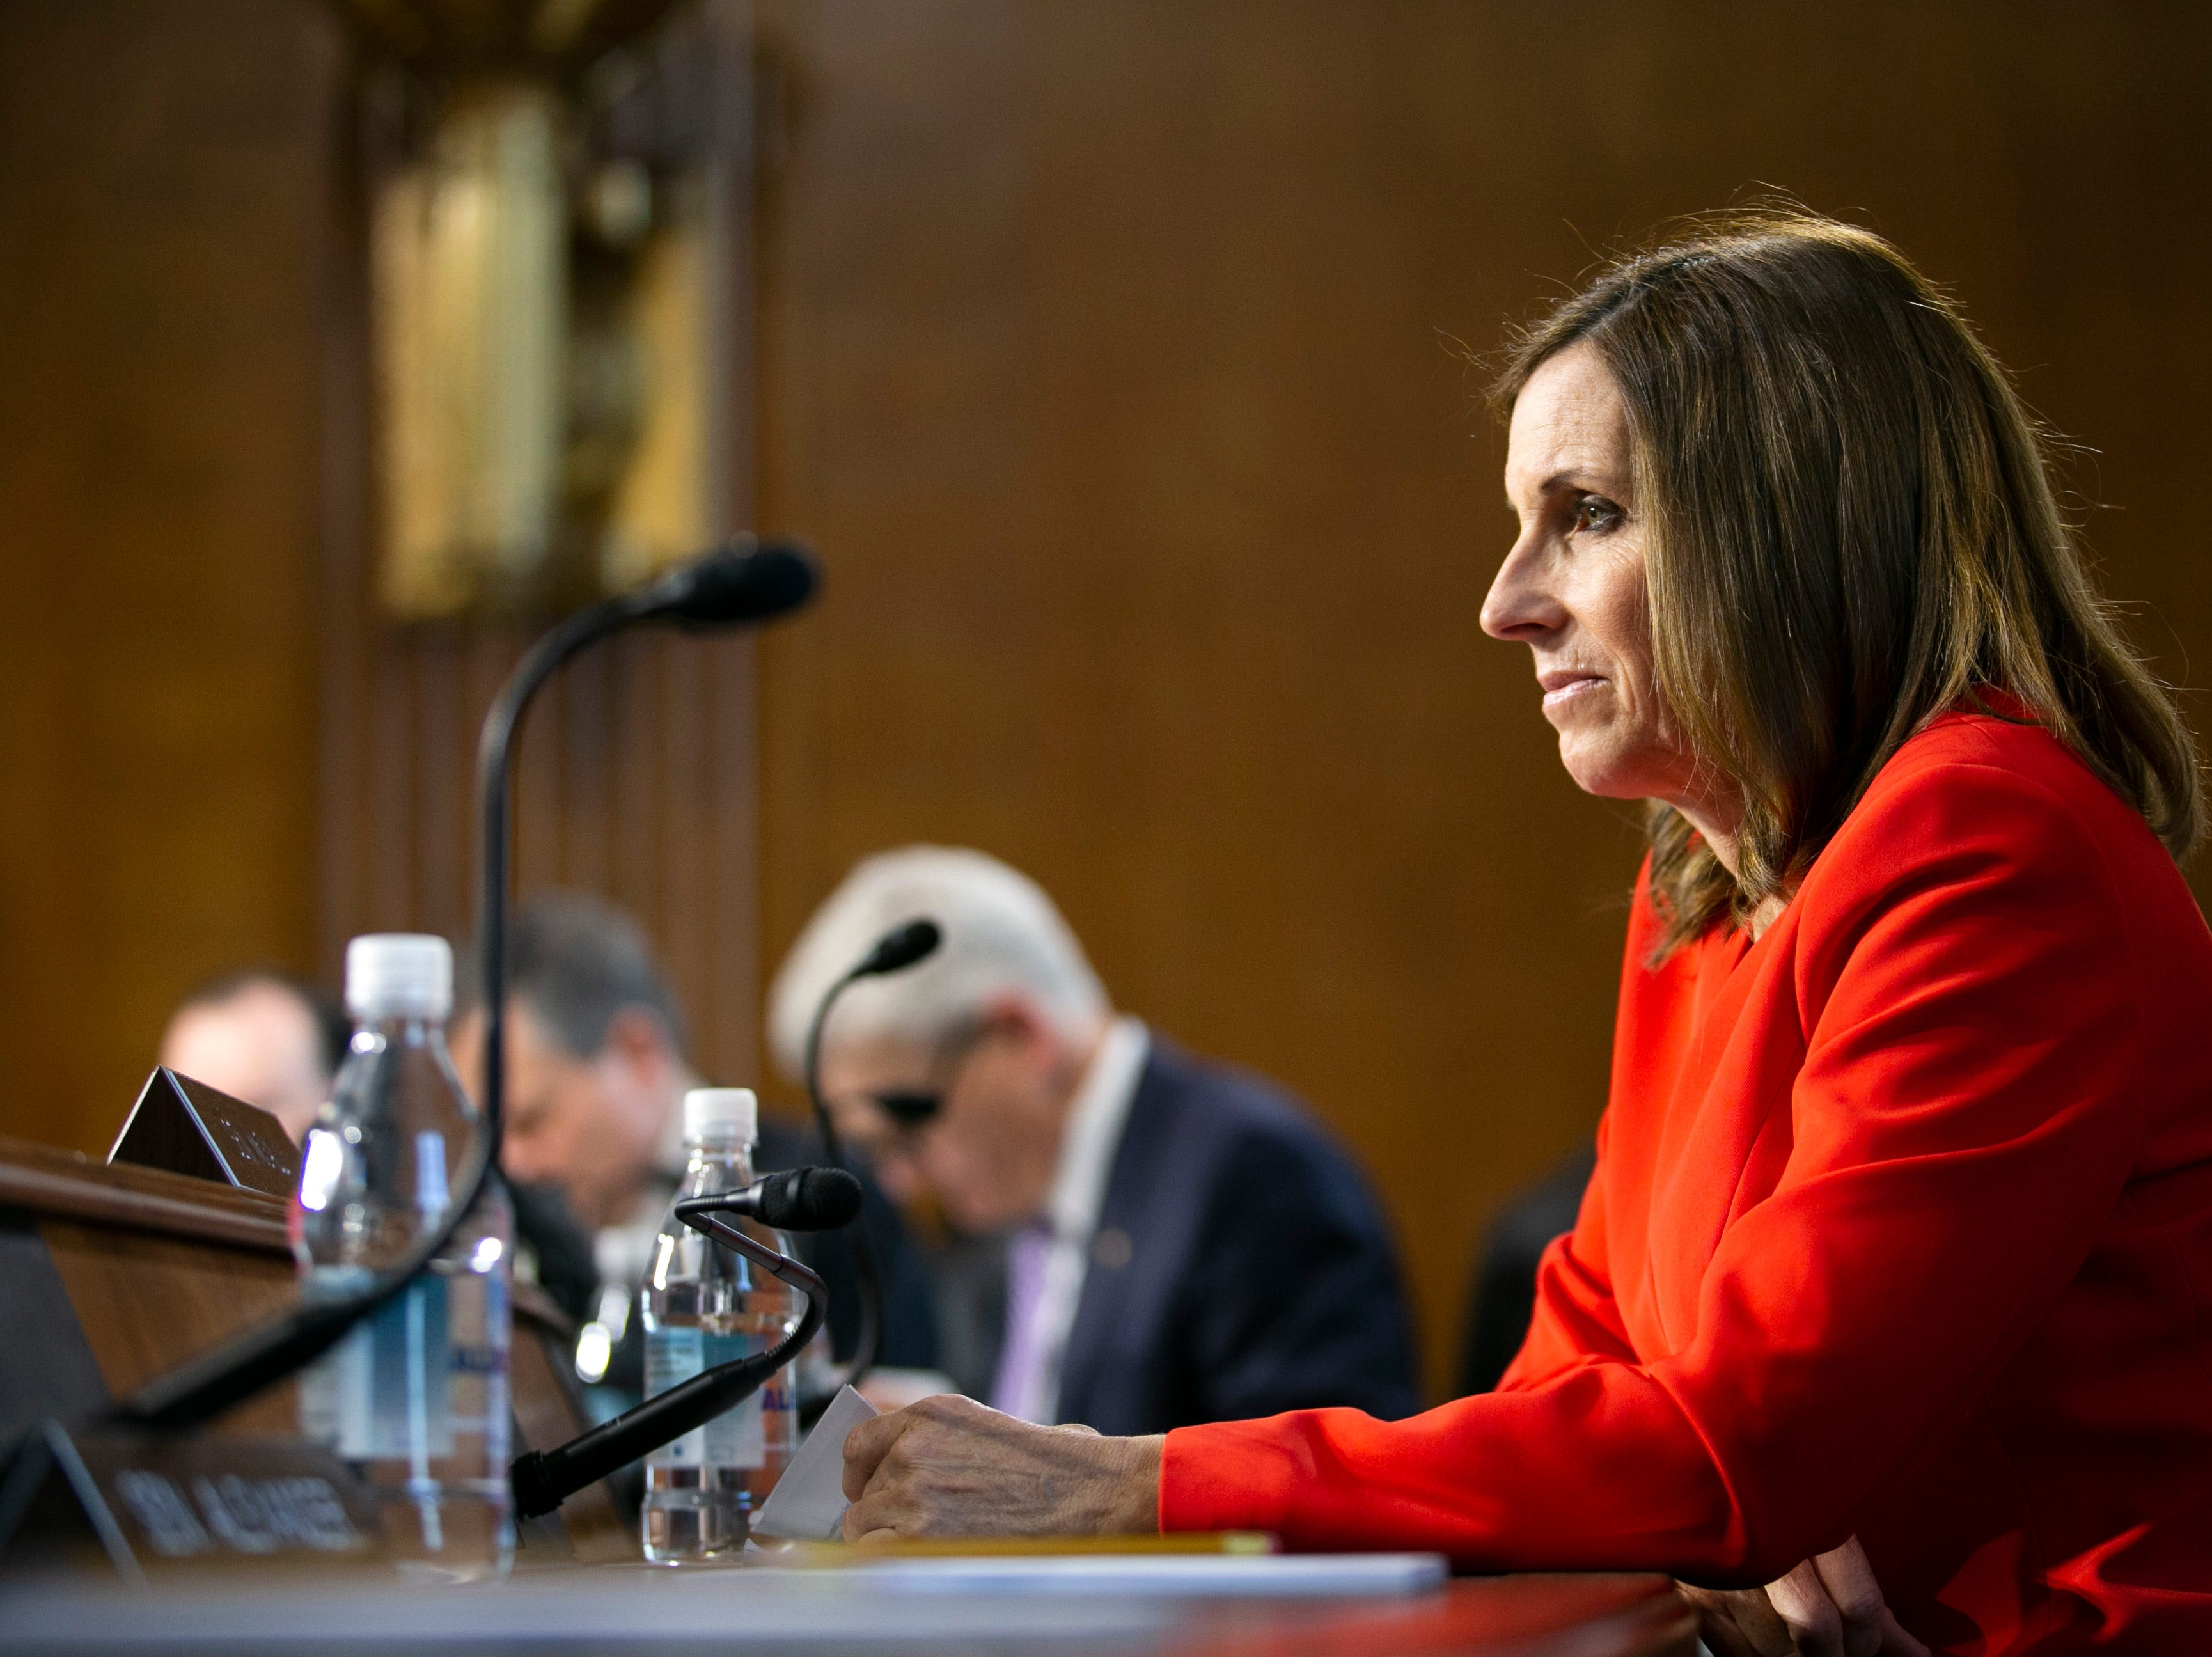 U.S. Senator Martha McSally listens during the U.S. Senate Committee on Energy and Natural Resources hearing at the U.S. Capitol in Washington D.C. on Feb. 5, 2019.